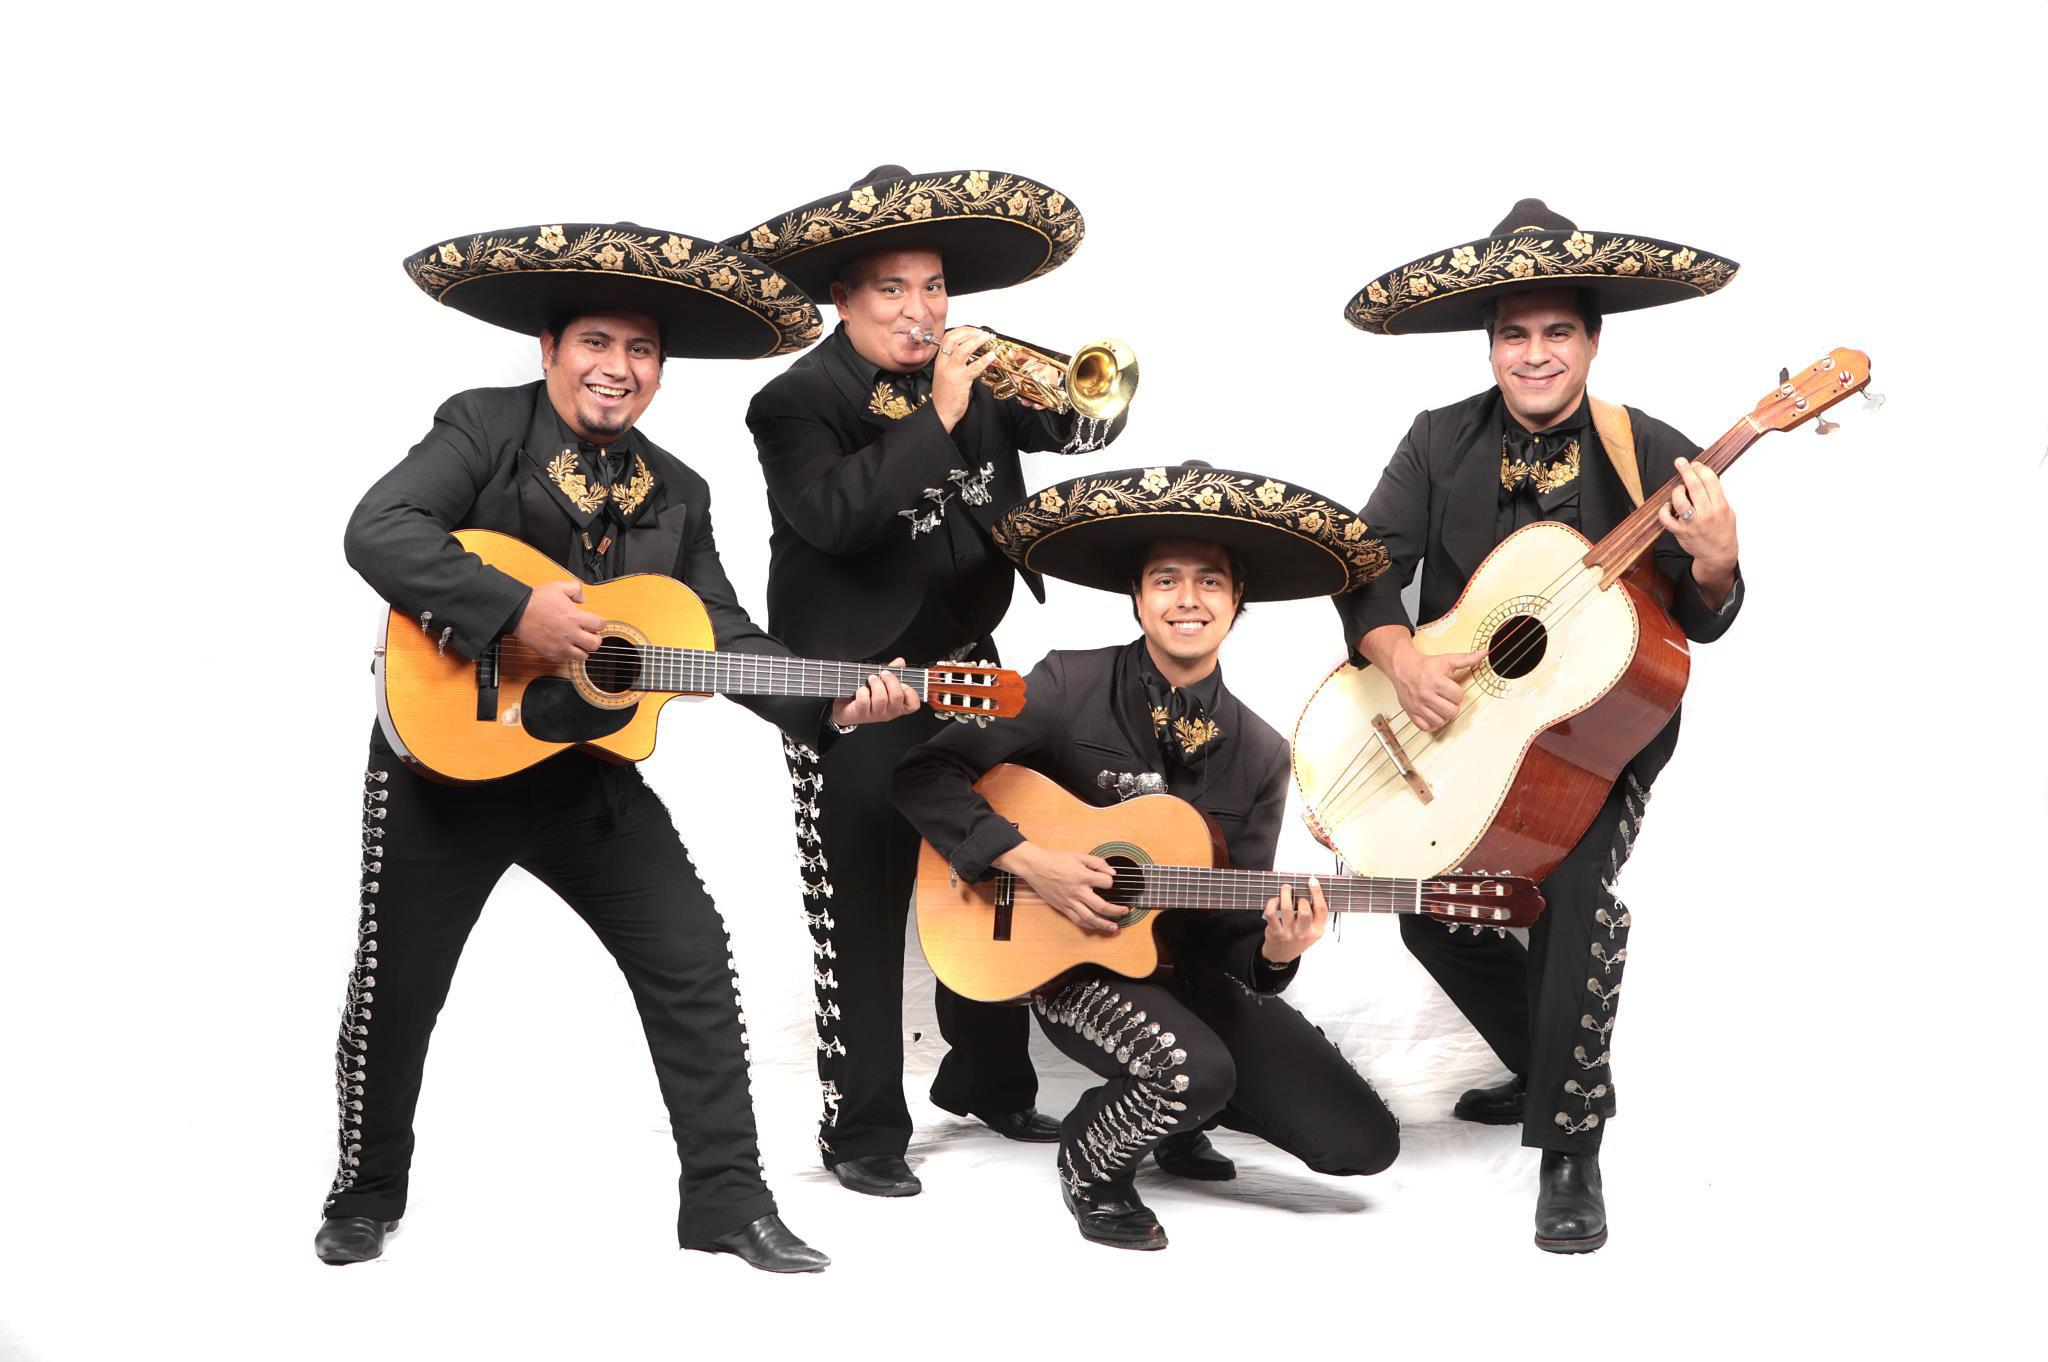 MARIACHI-BANDS BAND HIRE IN WILTSHIRE | MARIACHI-BANDS BANDS TO HIRE ...